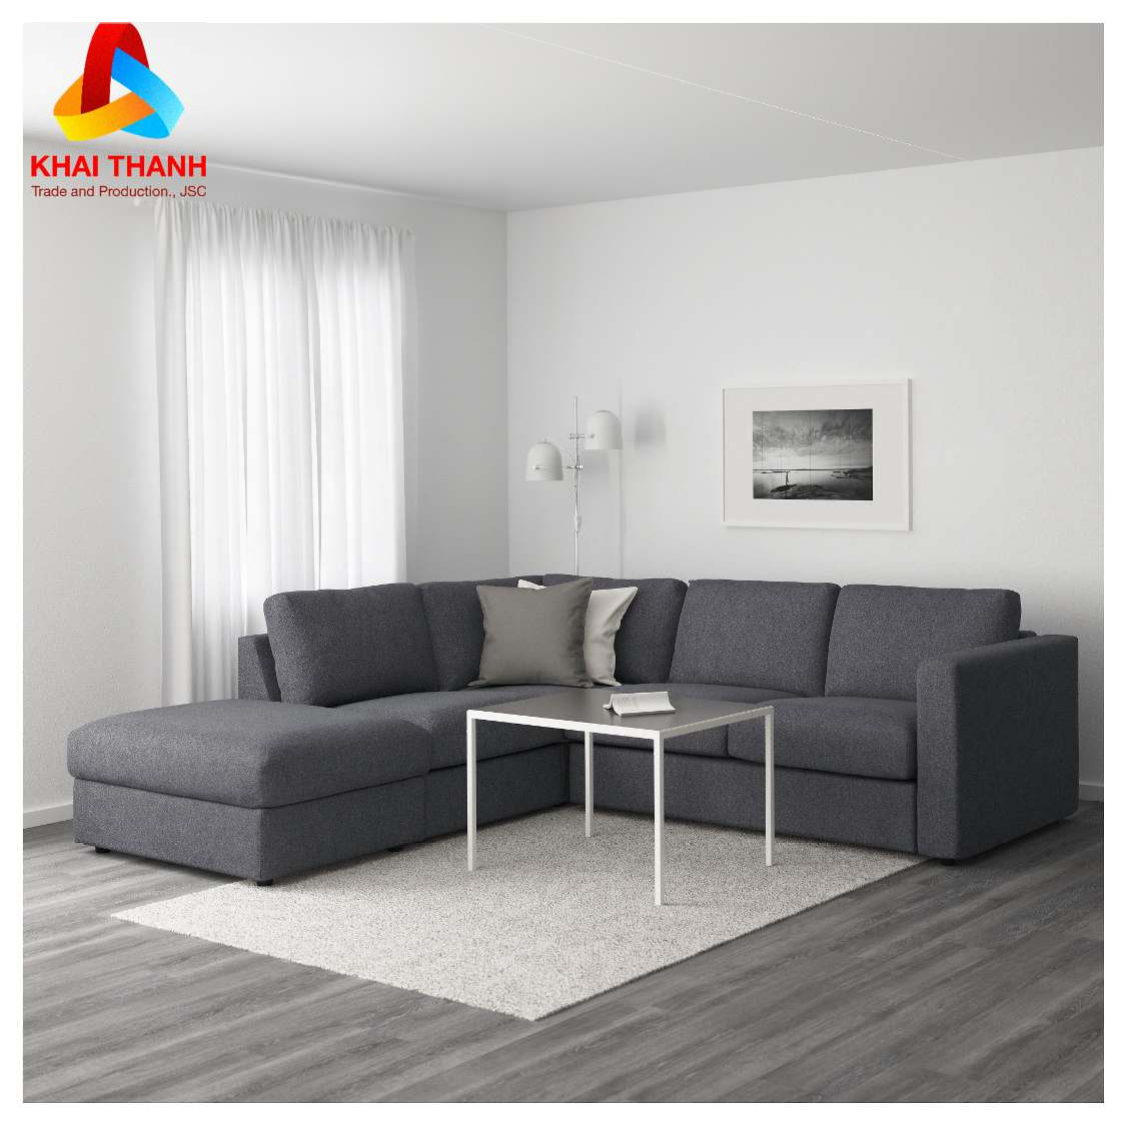 Vietnam Stuffing Sofa PSF 7D/15Dx32~64mm Hollow Conjugated Siliconized/Non Siliconized Low Price